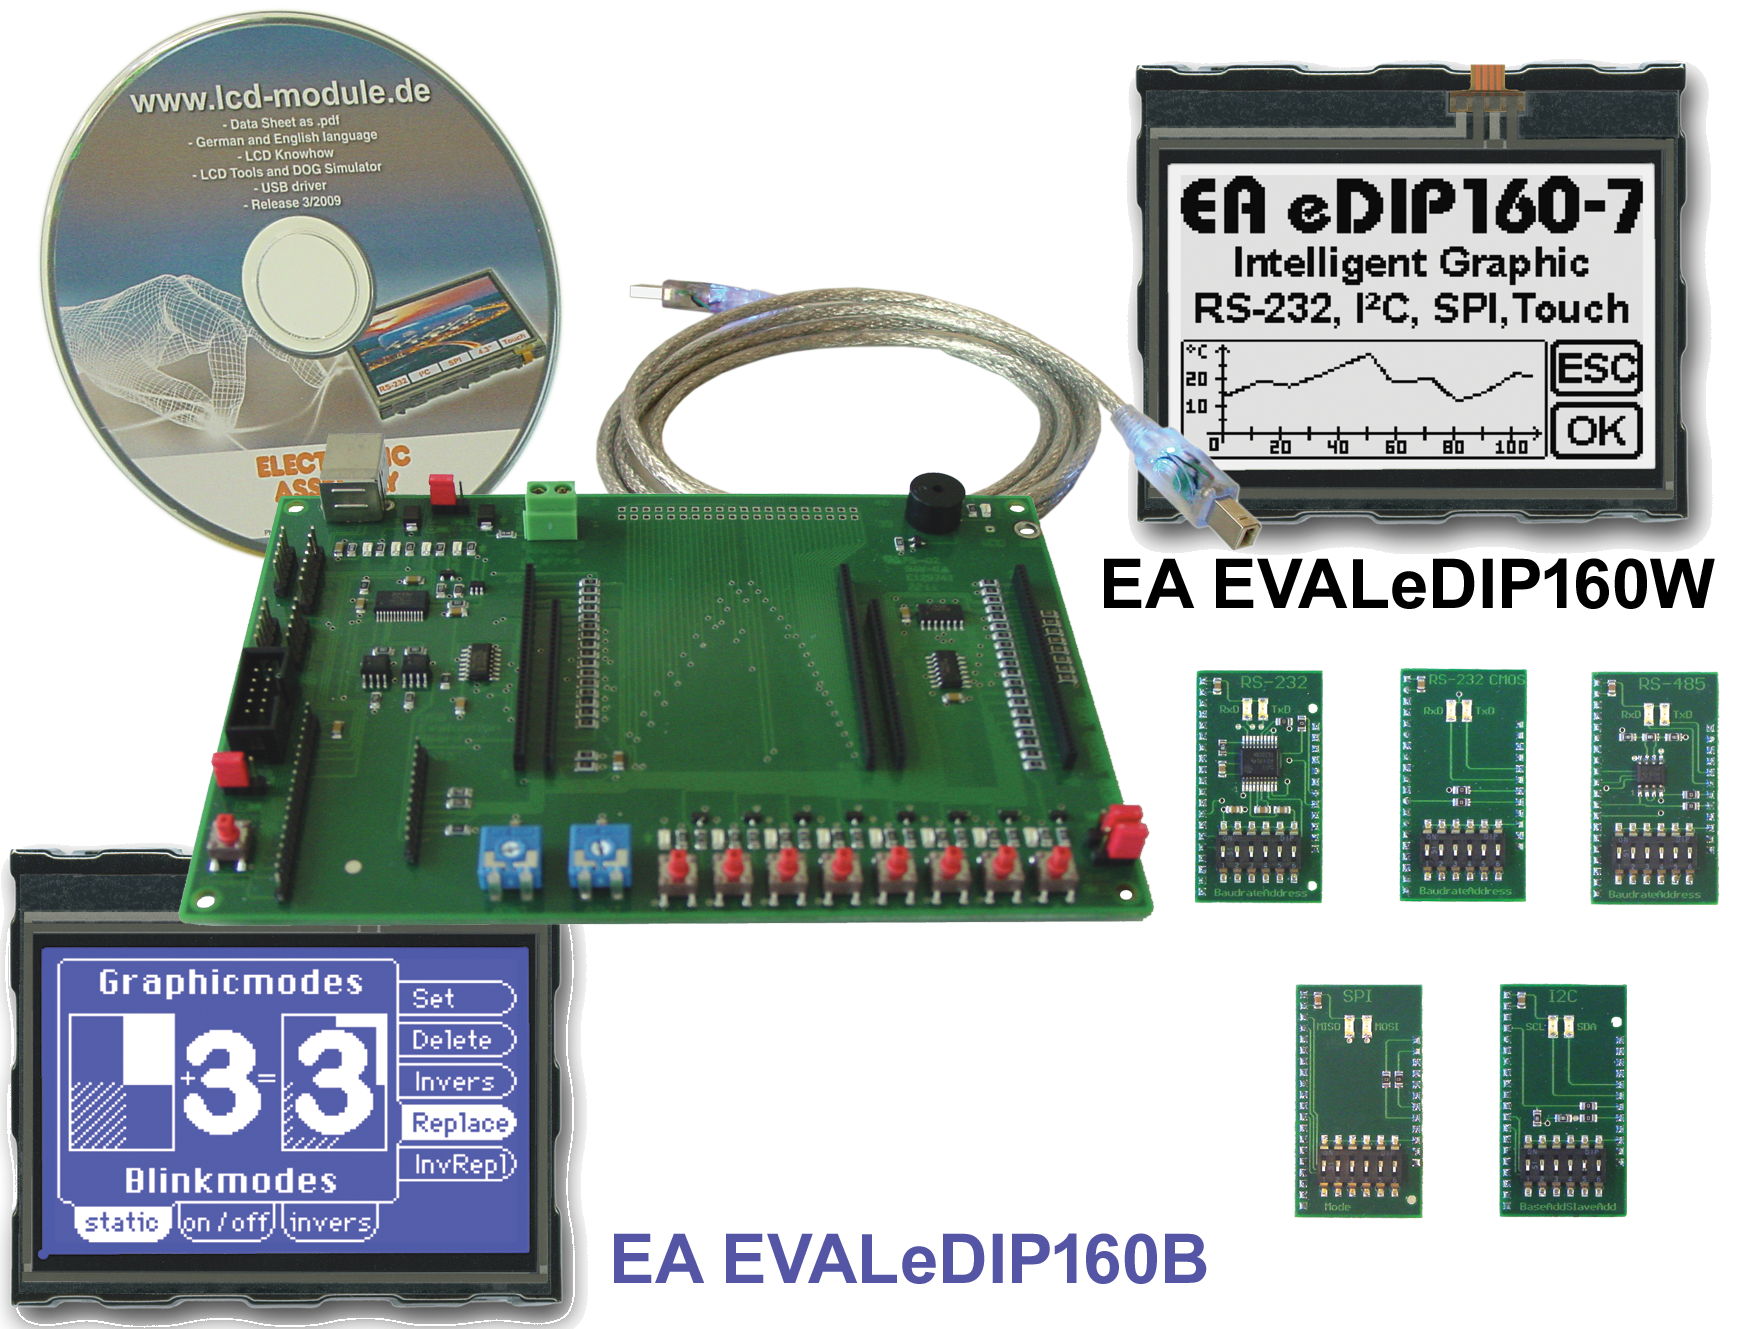 Evaluation KIT with EA eDIP160-7LWTP